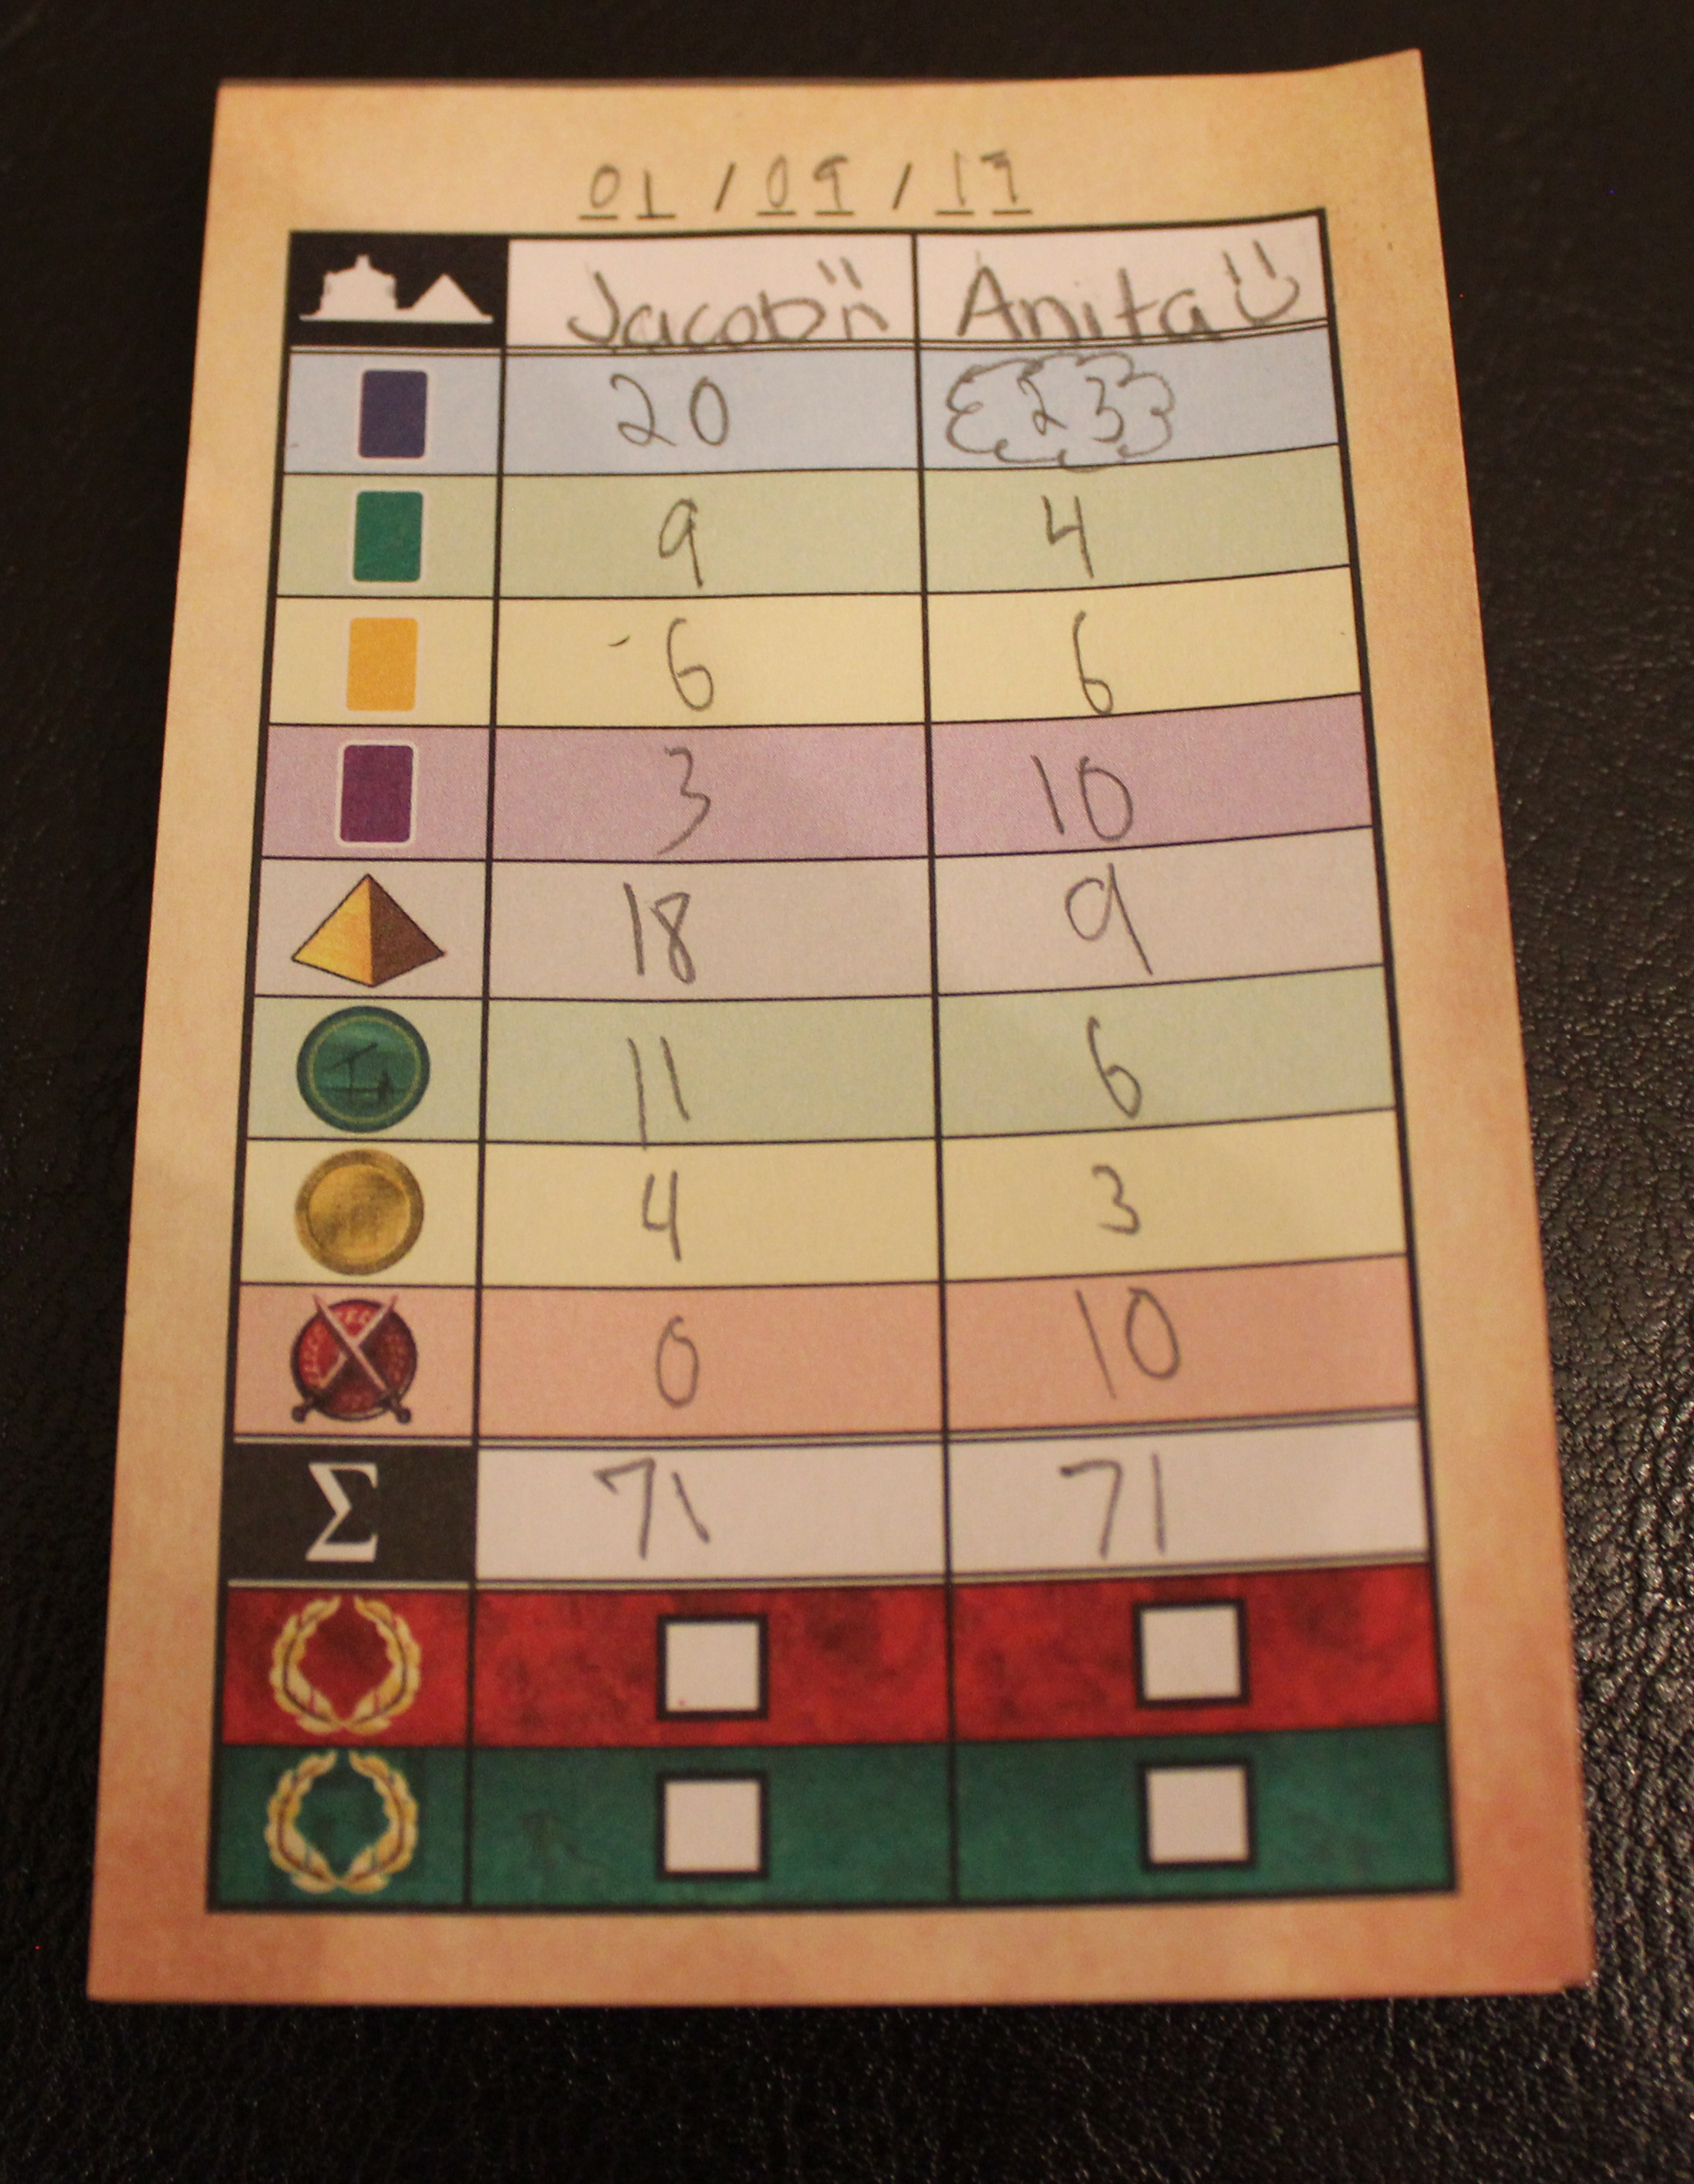 """Anita and I playing a game that made it all the way to the final Age. We tied initially, but the tiebreaker states whoever has the higher """"Civilian"""" score wins, so Anita claims victory!"""